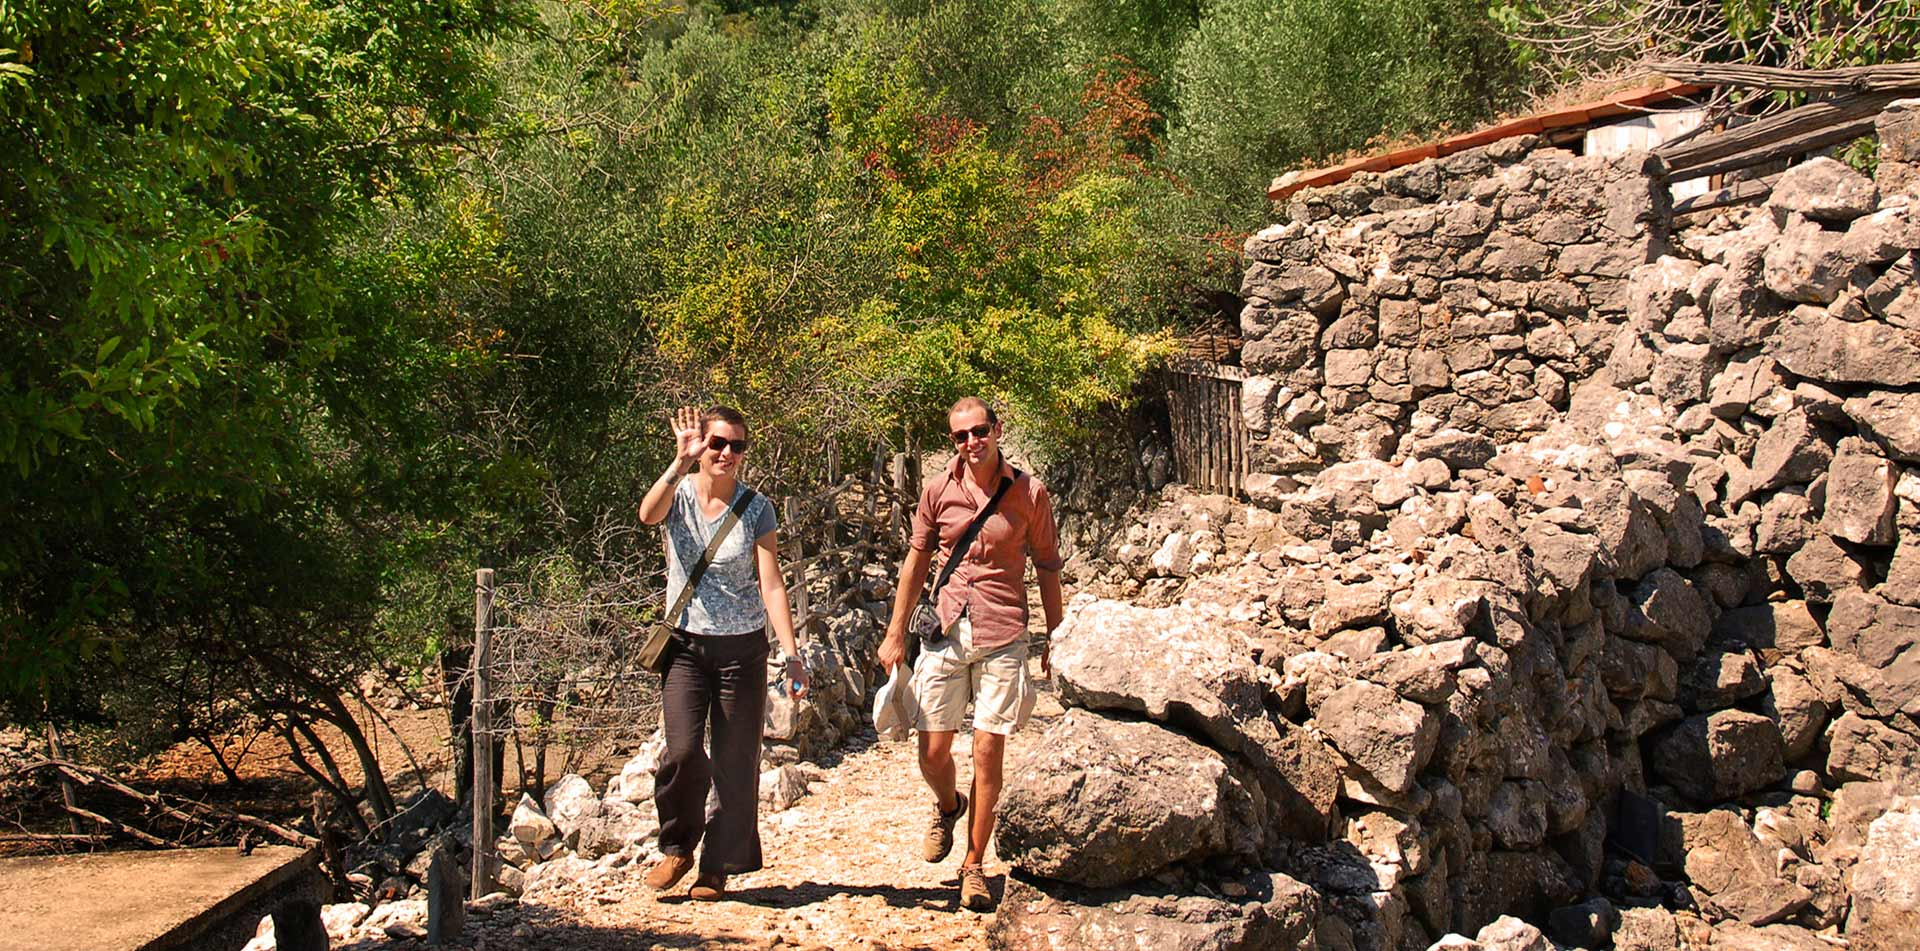 Europe Croatia happy couple walking woman waving scenic green landscape rocky trail hike - luxury vacation destinations